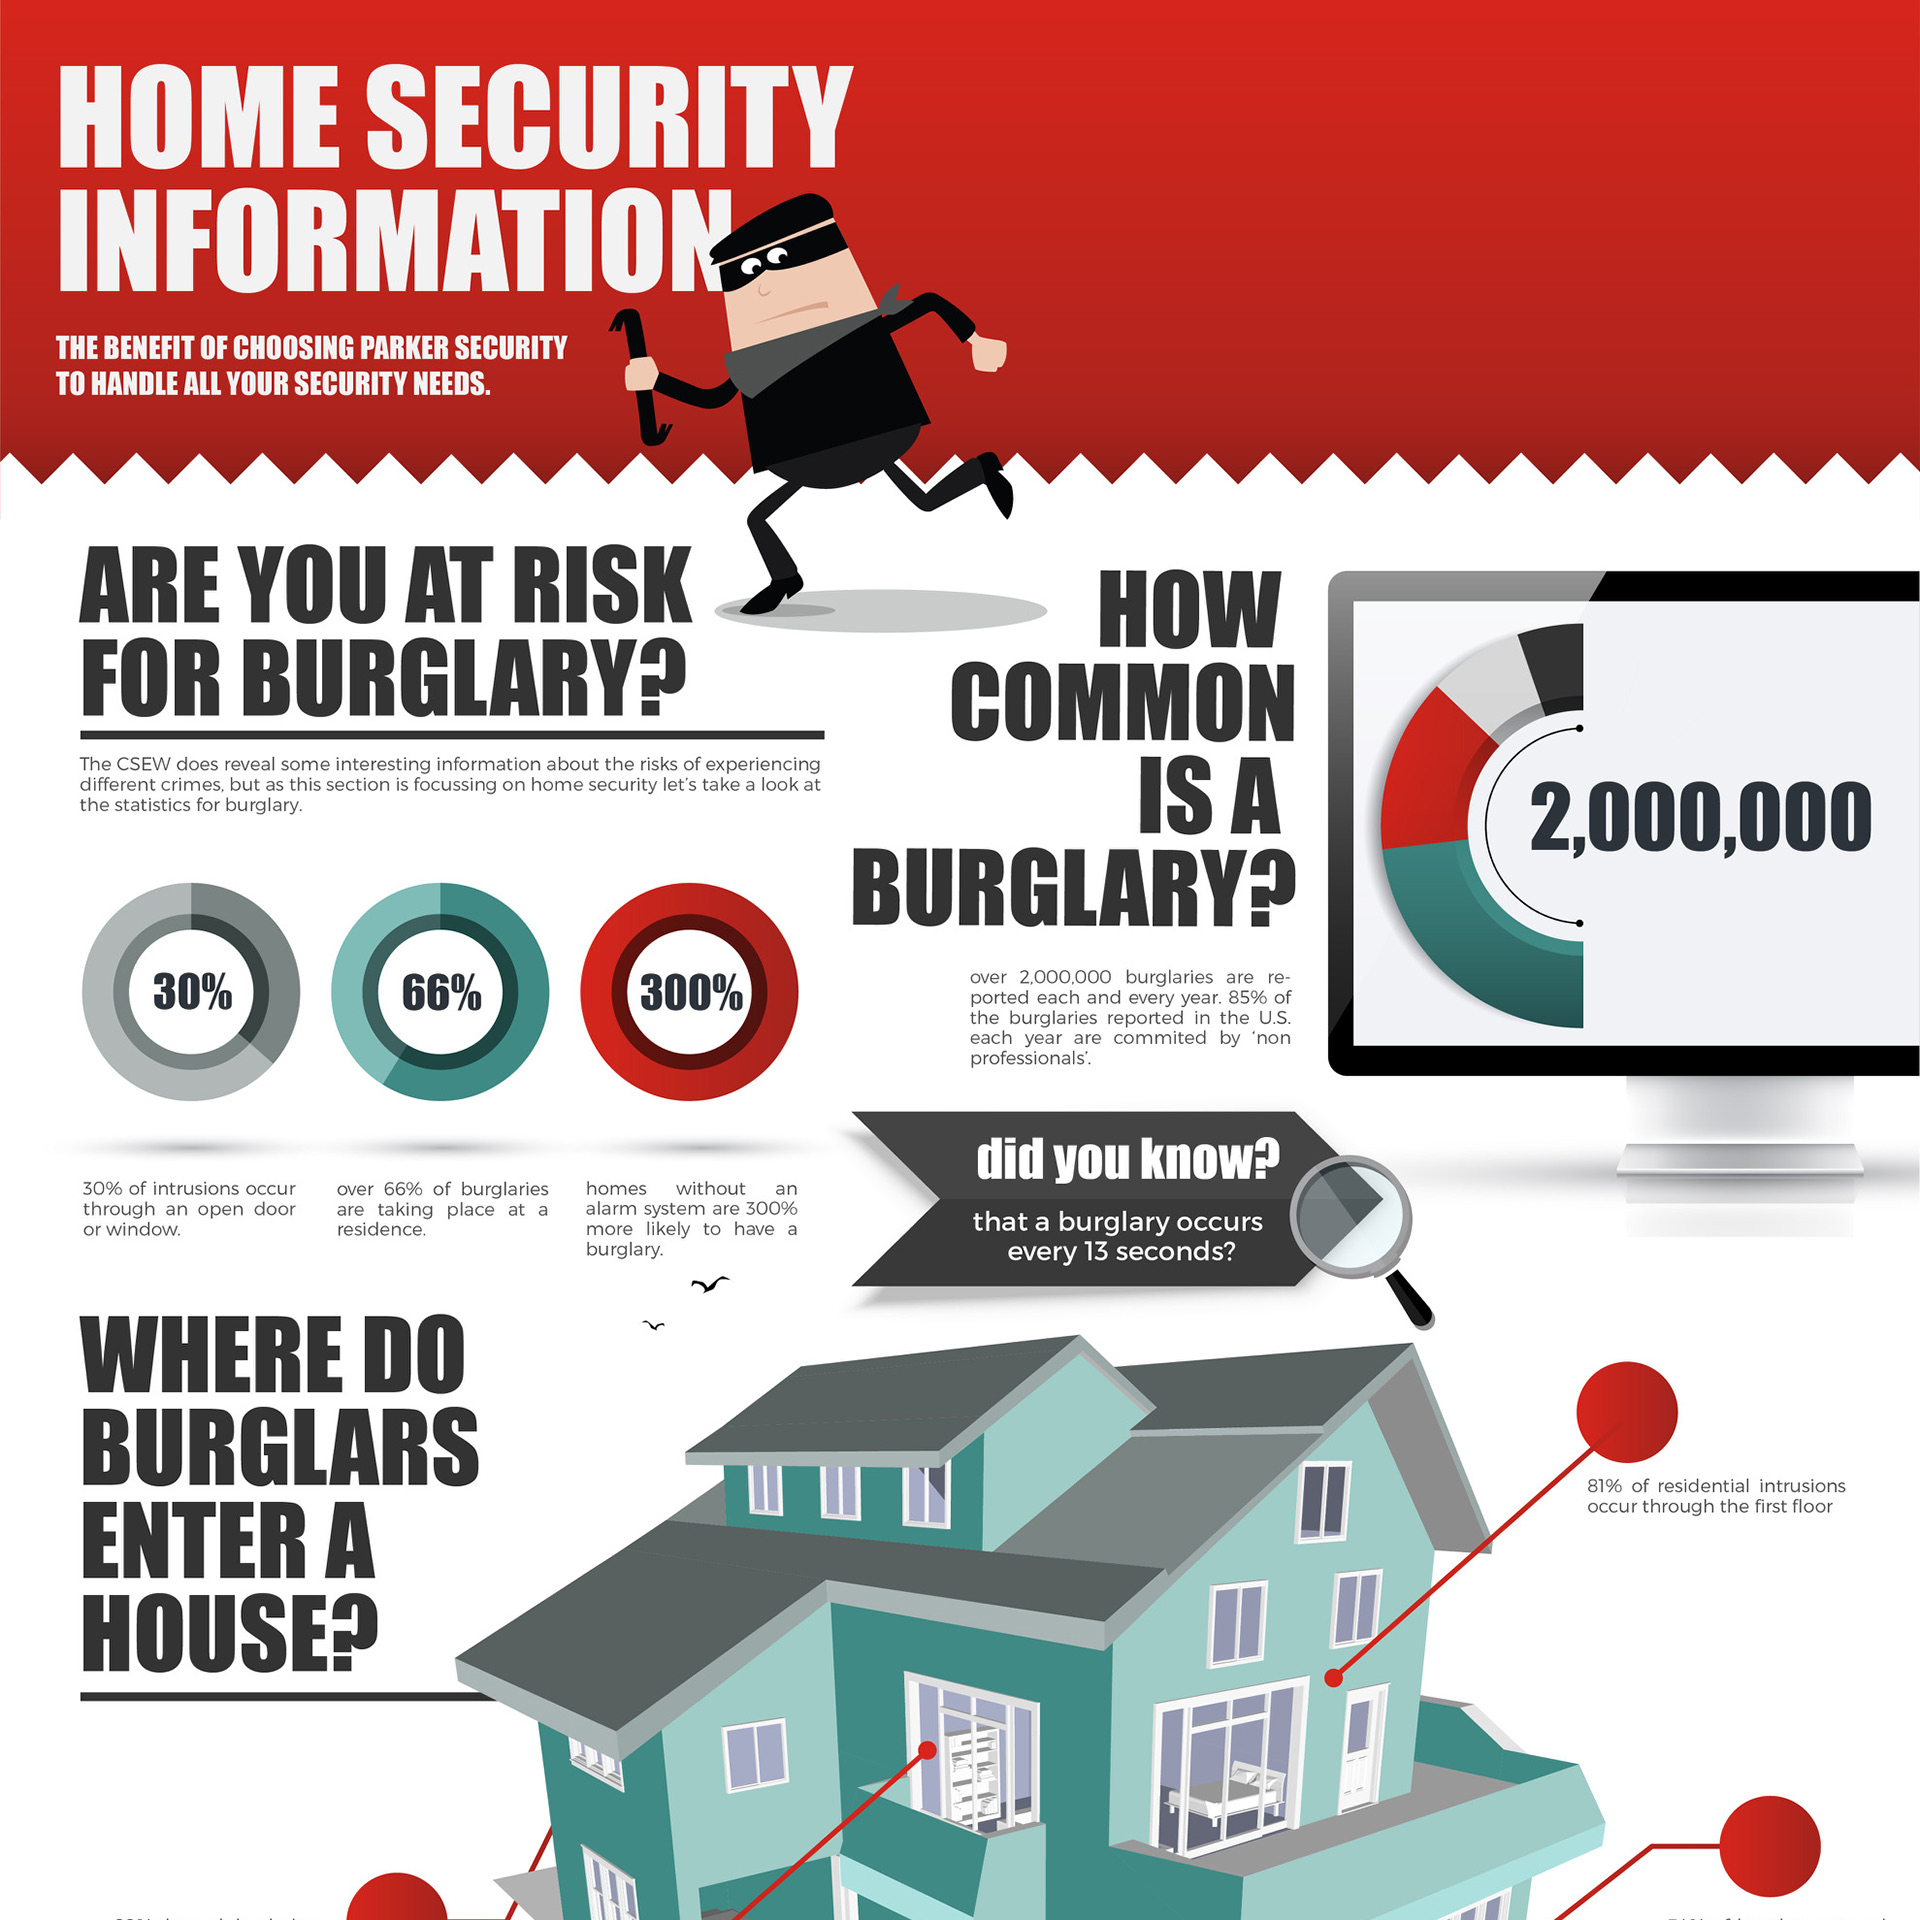 Infographic done for a security service